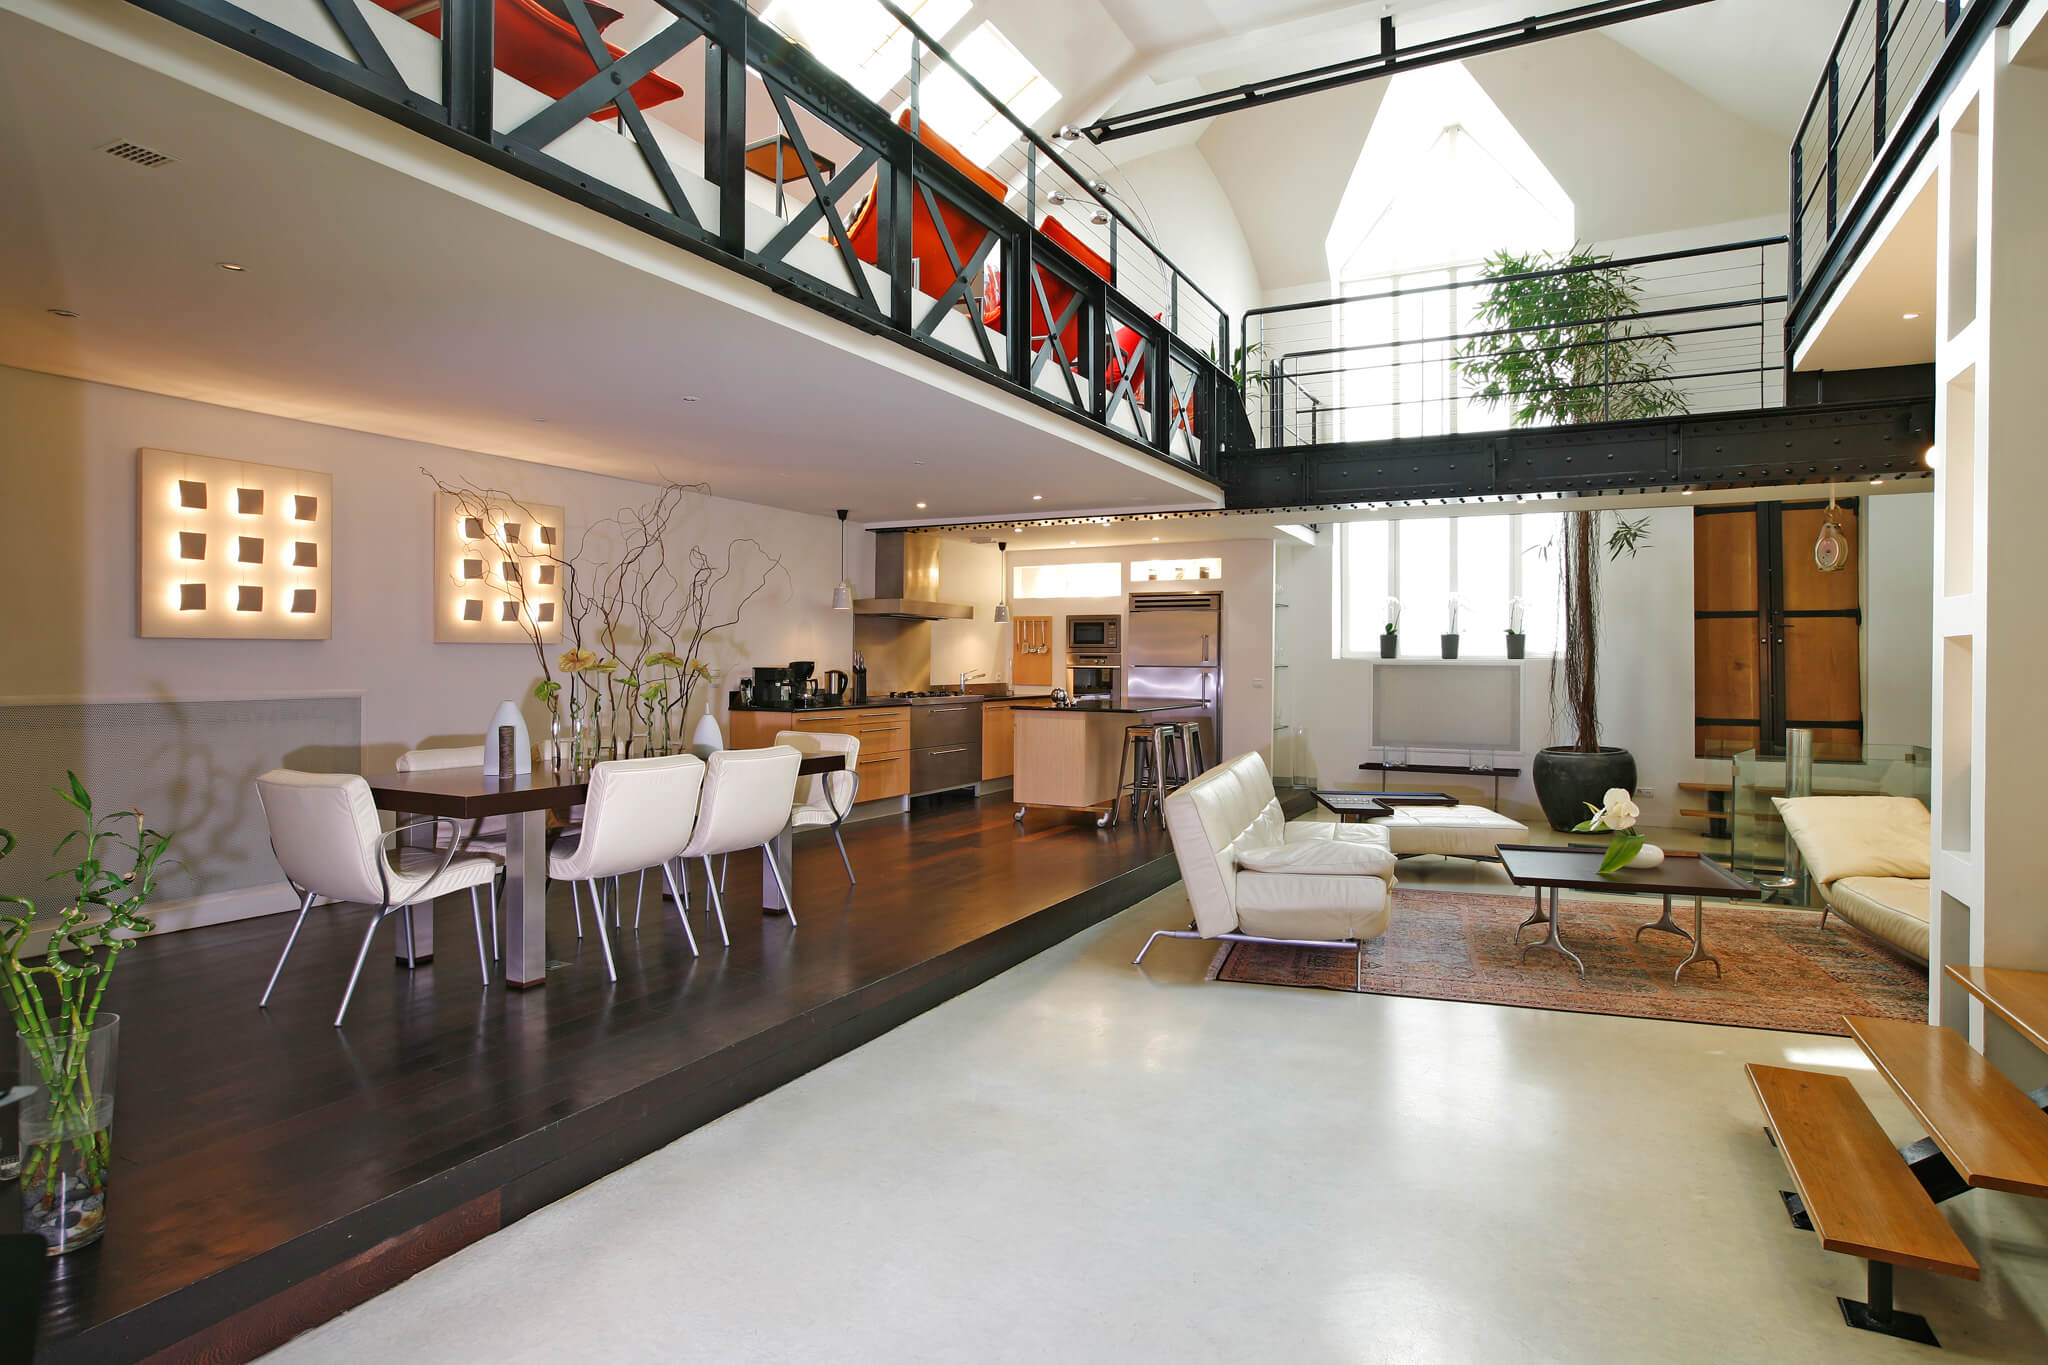 Paris Luxury Apartment Rental Luxury Designer Loft Haven In - Beautifully designed loft apartments seattle perfect